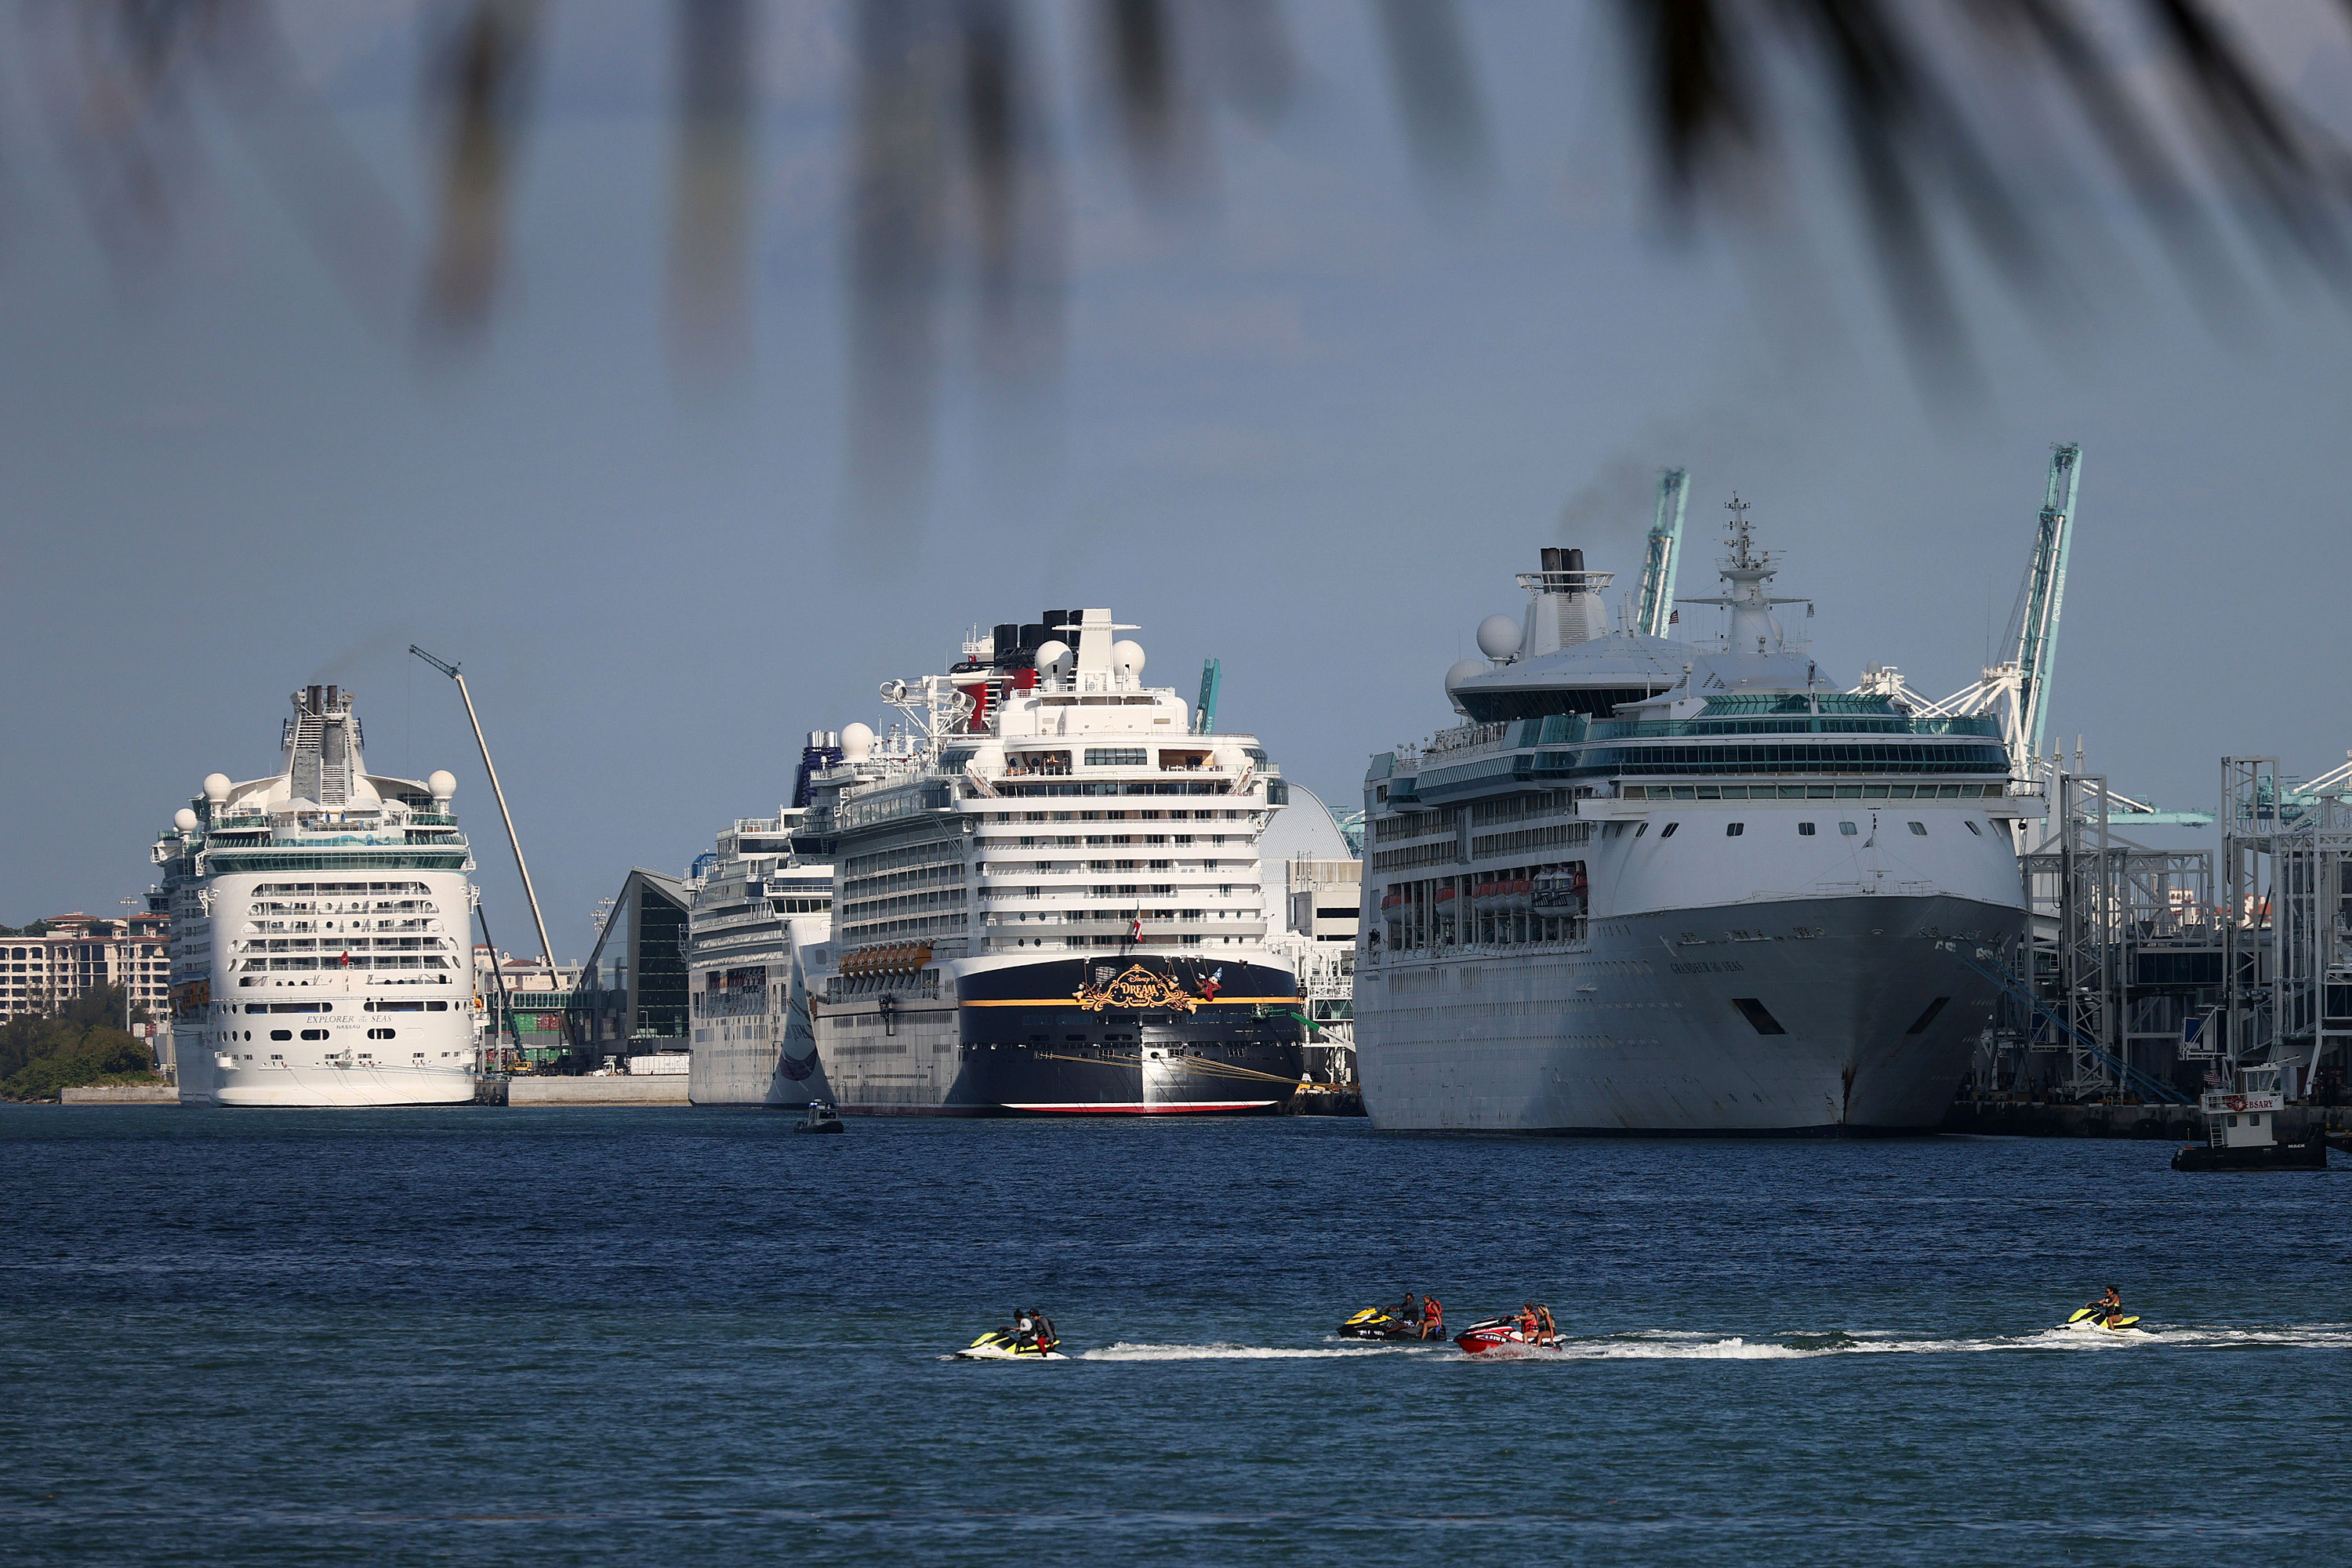 A judge ruled that Florida would be harmed by the CDC stopping most cruise ships from sailing